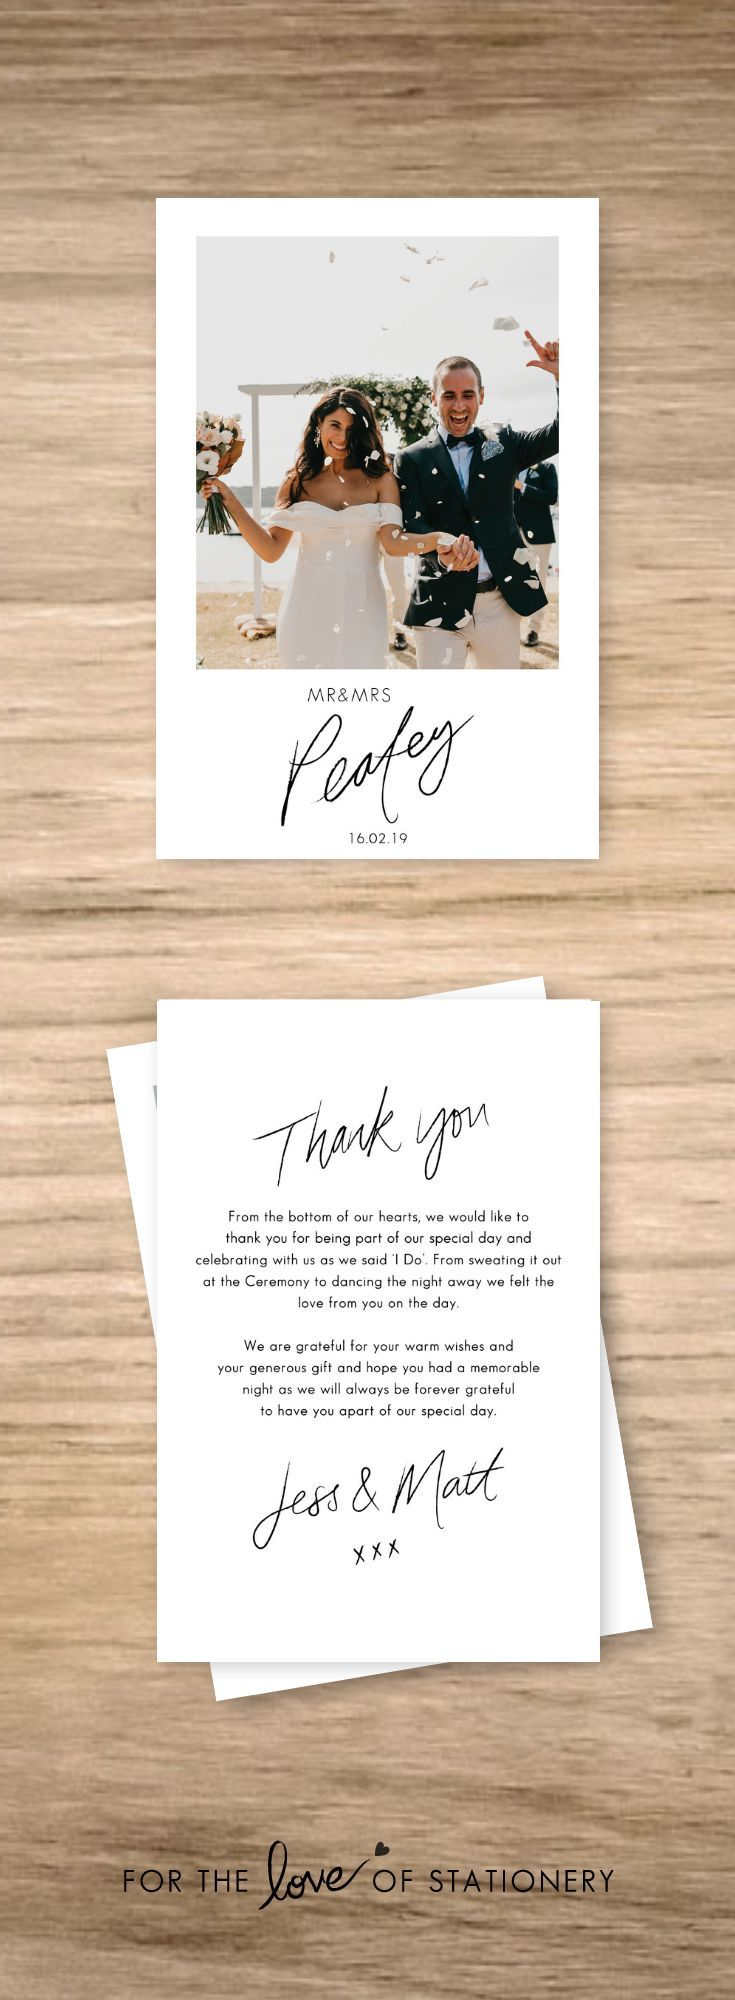 Personalised Wedding Thank You Cards With Photos Wedding Thank You Messages Wedding Thank You Postcards Wedding Thank You Cards